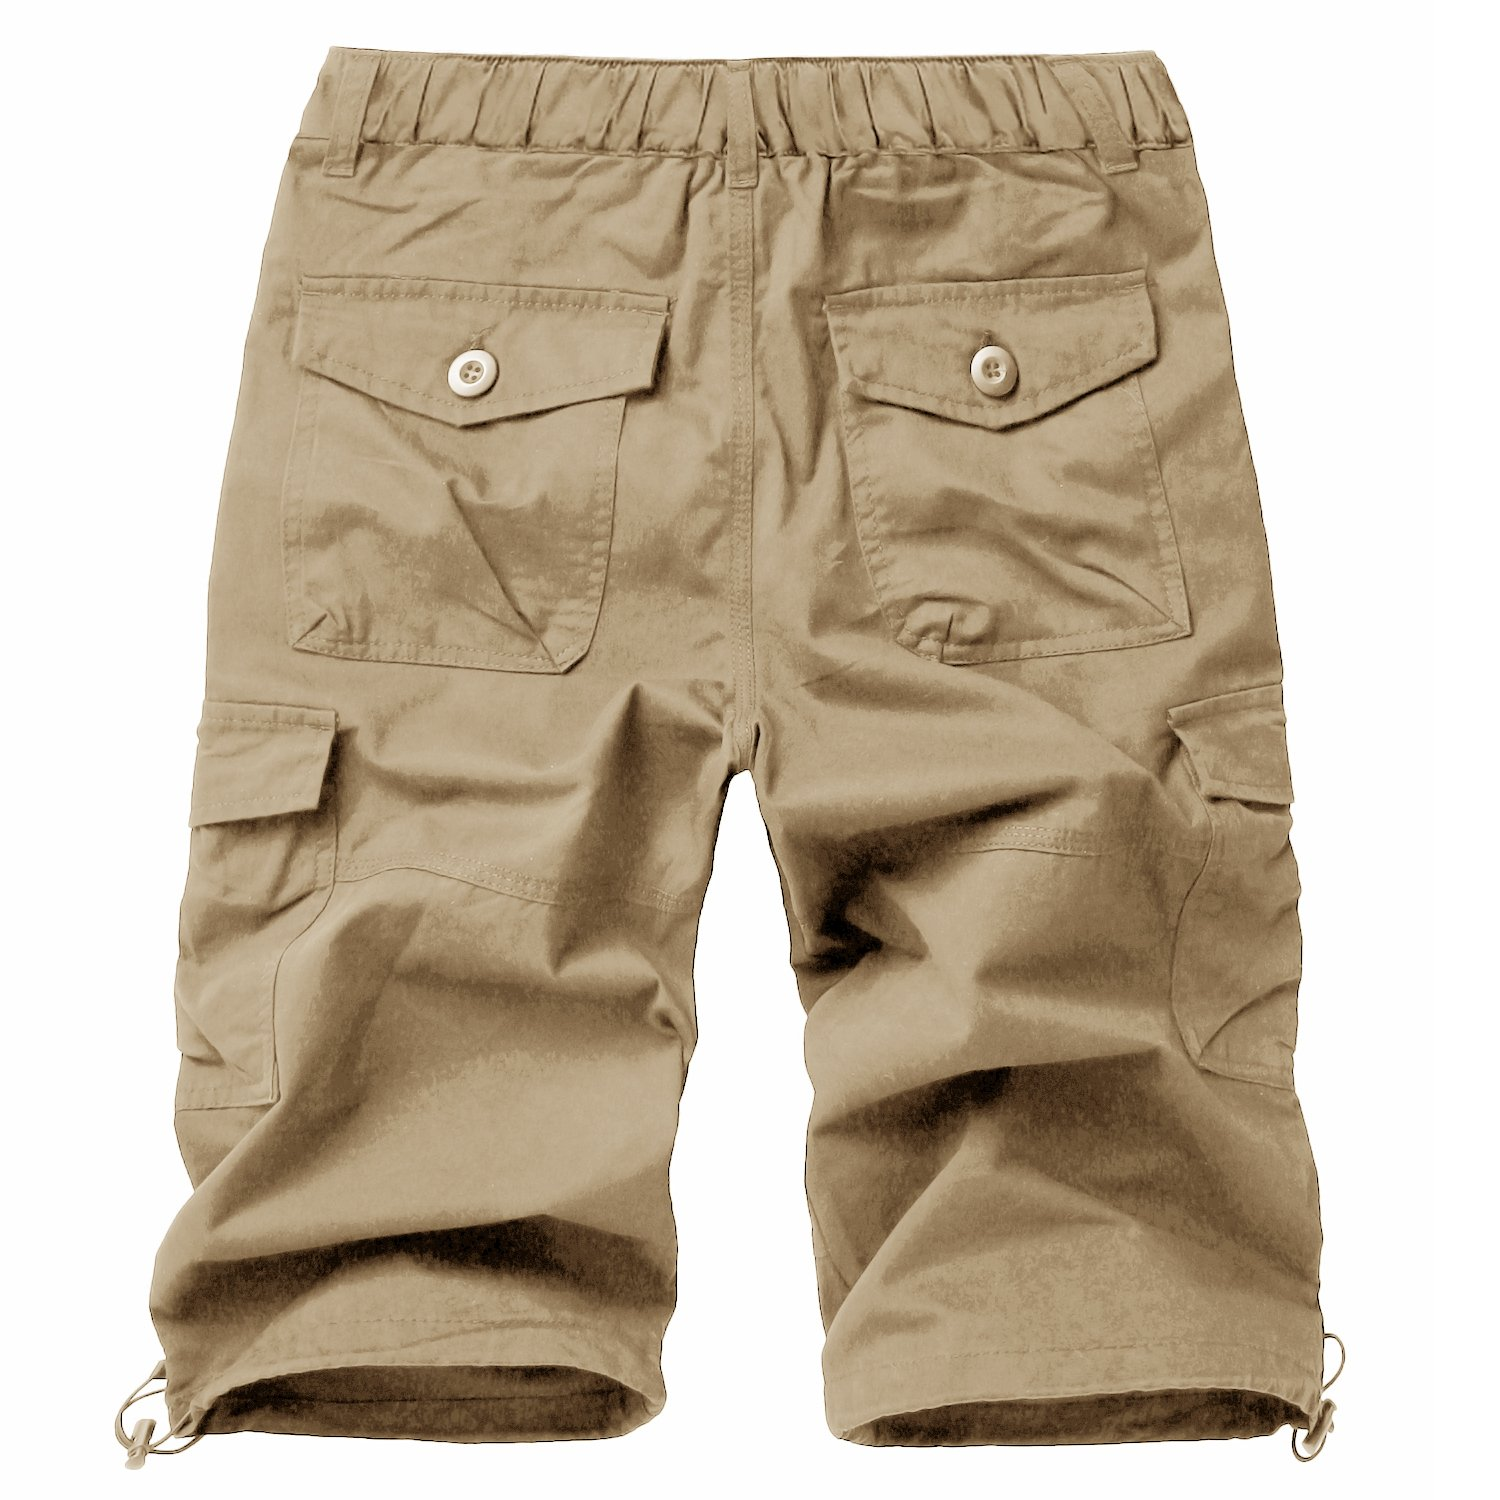 FASKUNOIE Men's Casual Shorts Relaxed Fit Loose 3/4 Cargo Shorts Autumn Work Business Below Knee Short Pants Pocket Khaki by FASKUNOIE (Image #7)